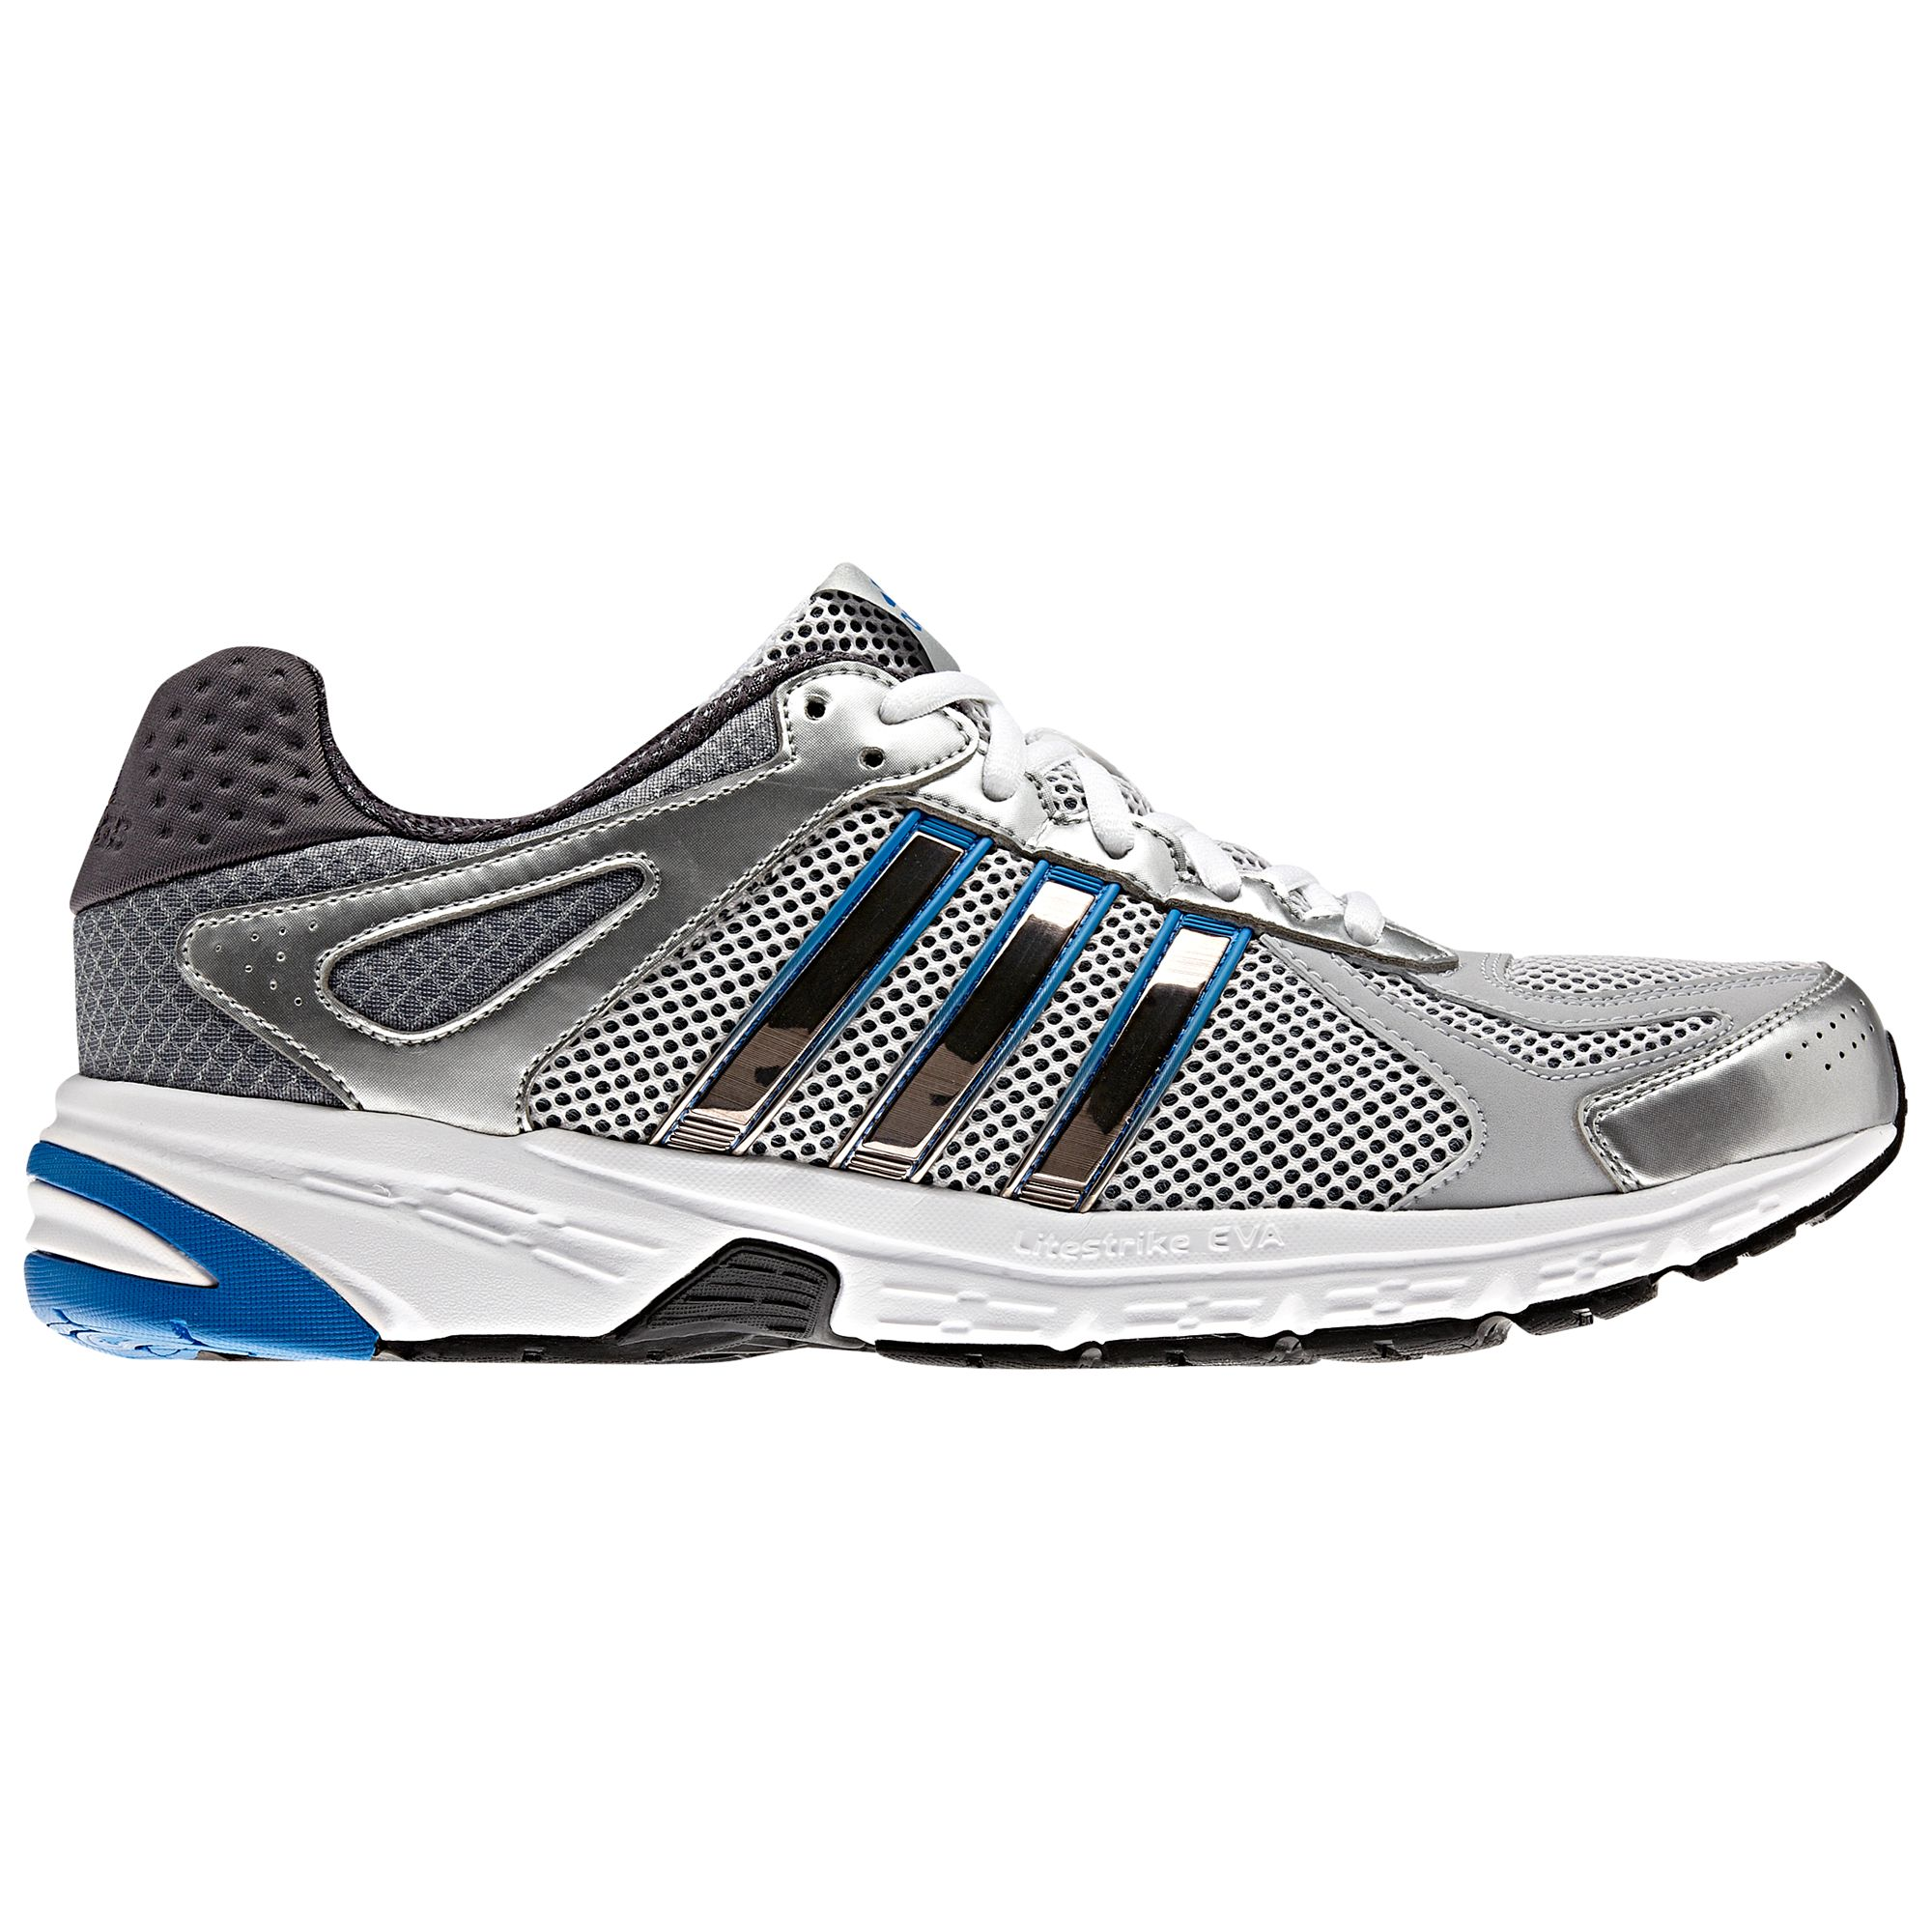 Adidas Duramo 5 Men's Running Shoes, Silver/Blue